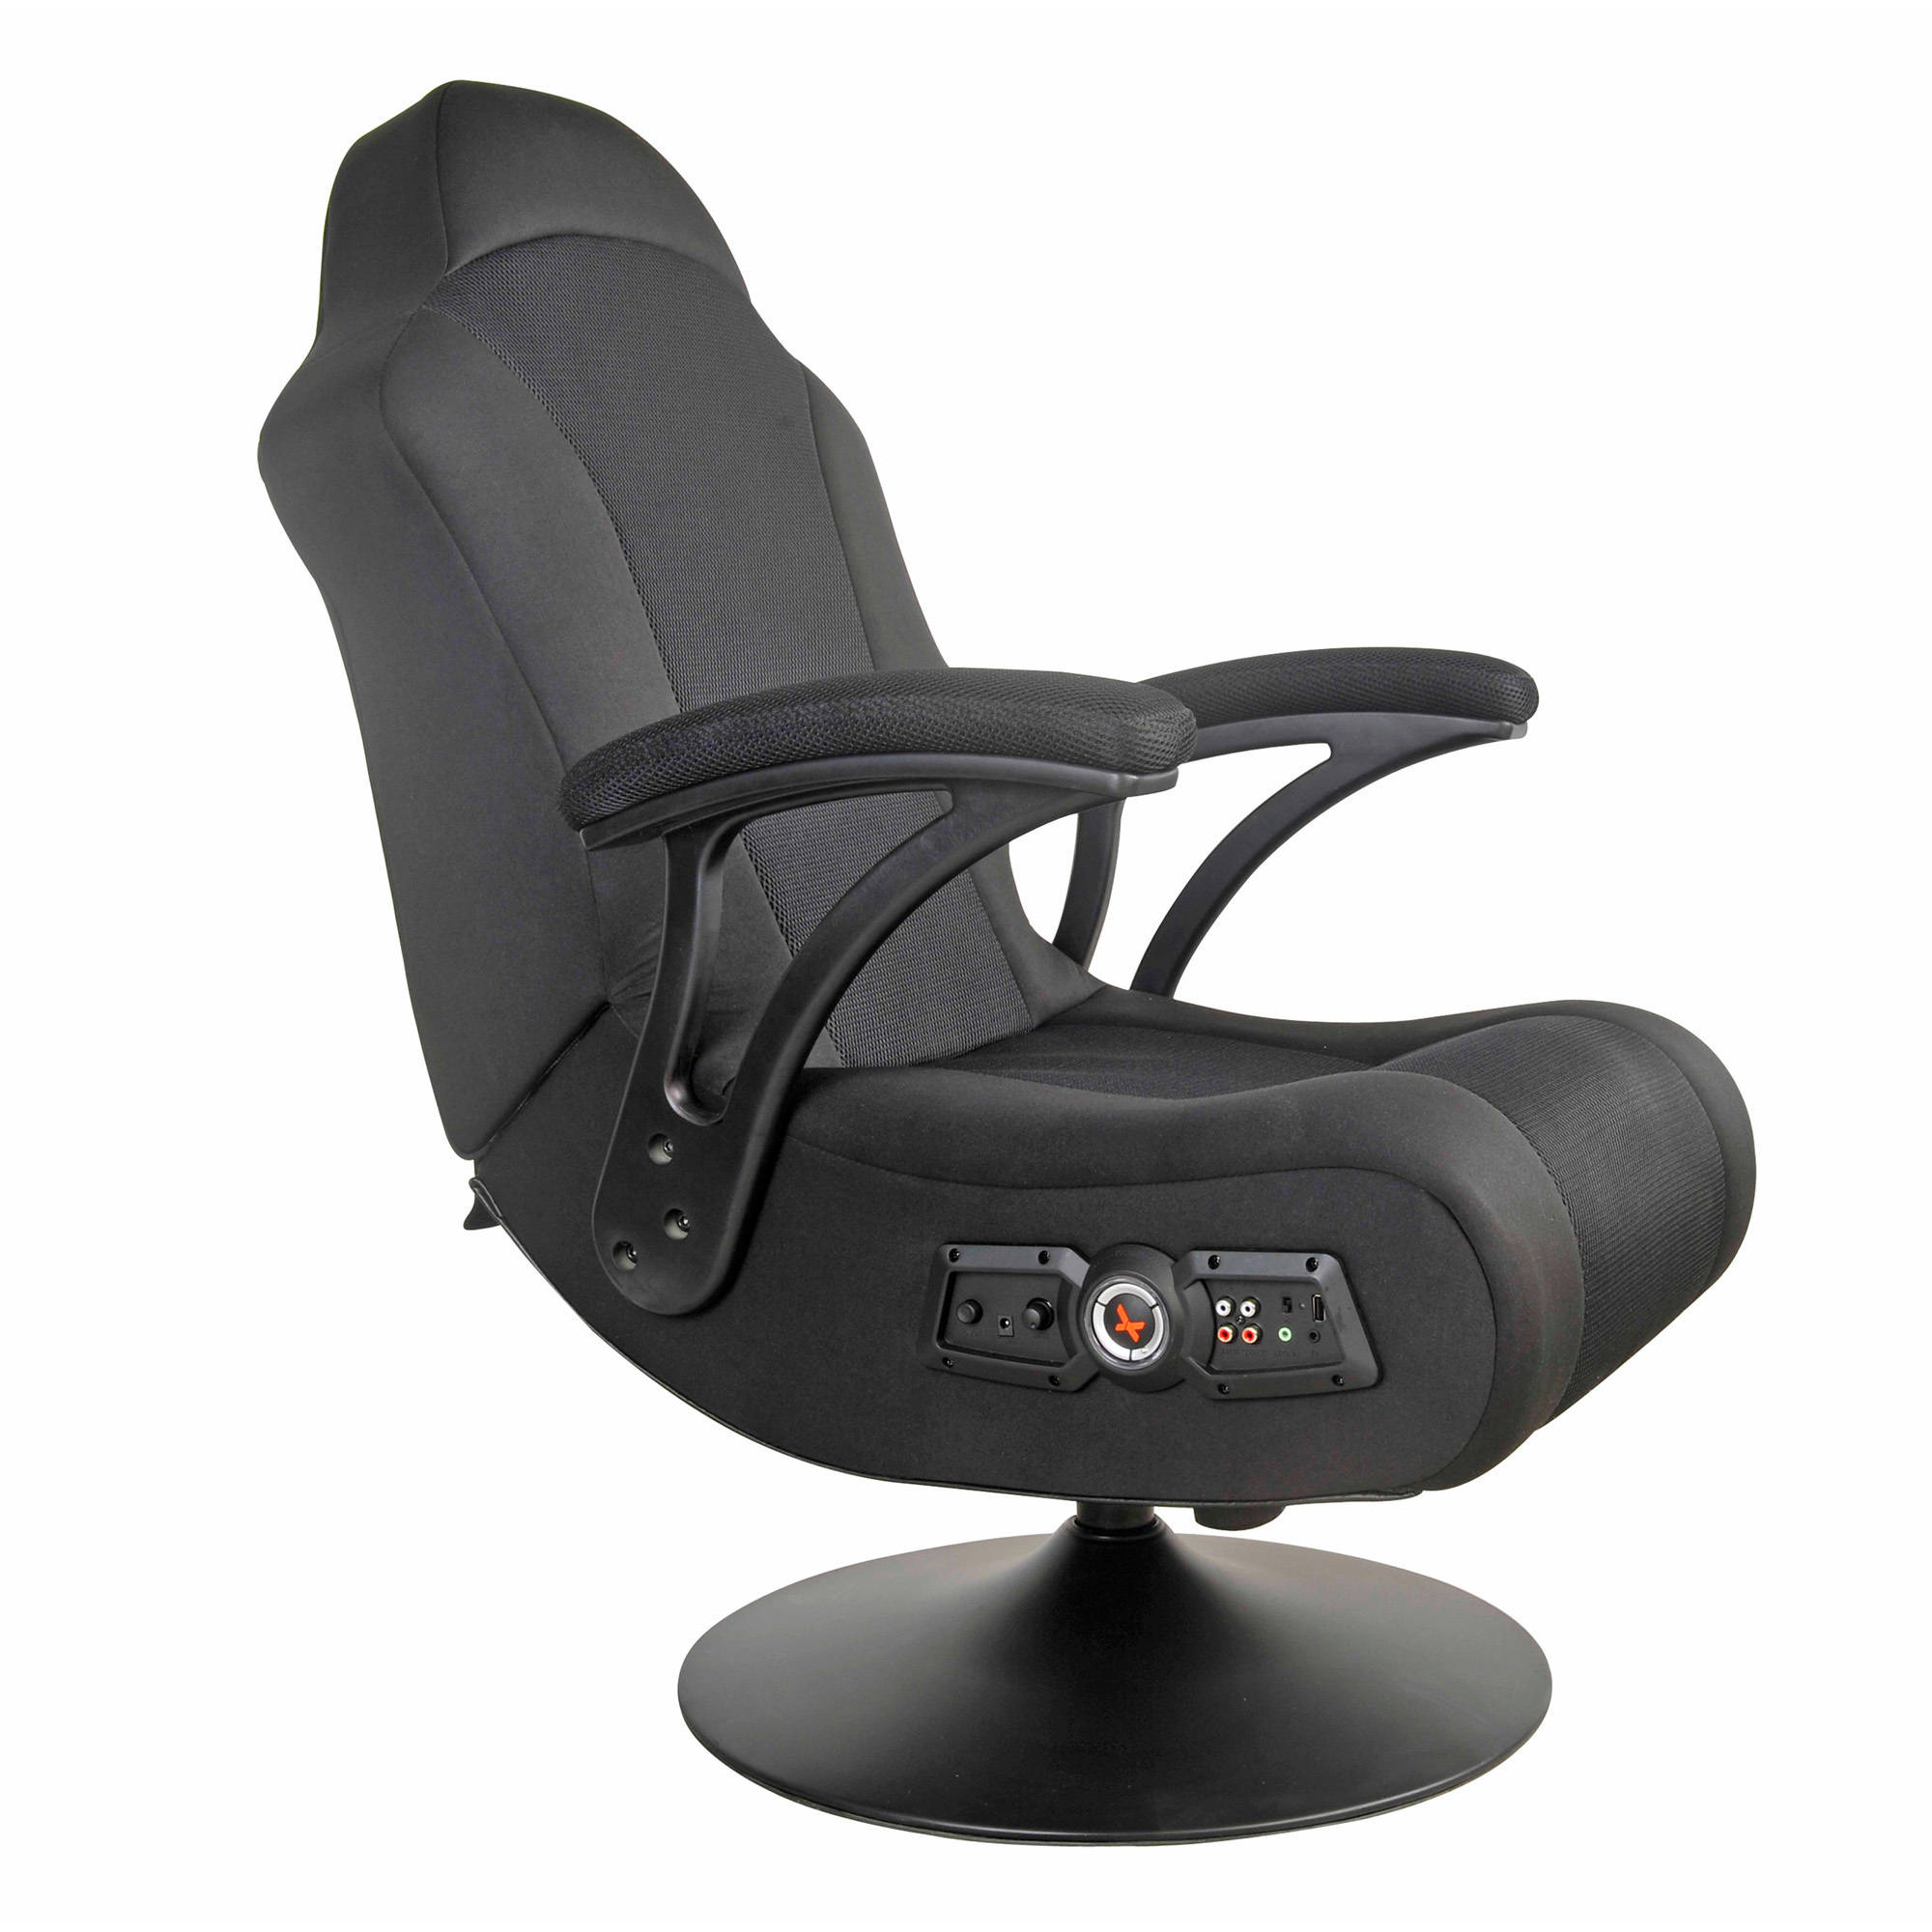 X-PRO 300 Pedestal Video Rocker with Bluetooth Technology